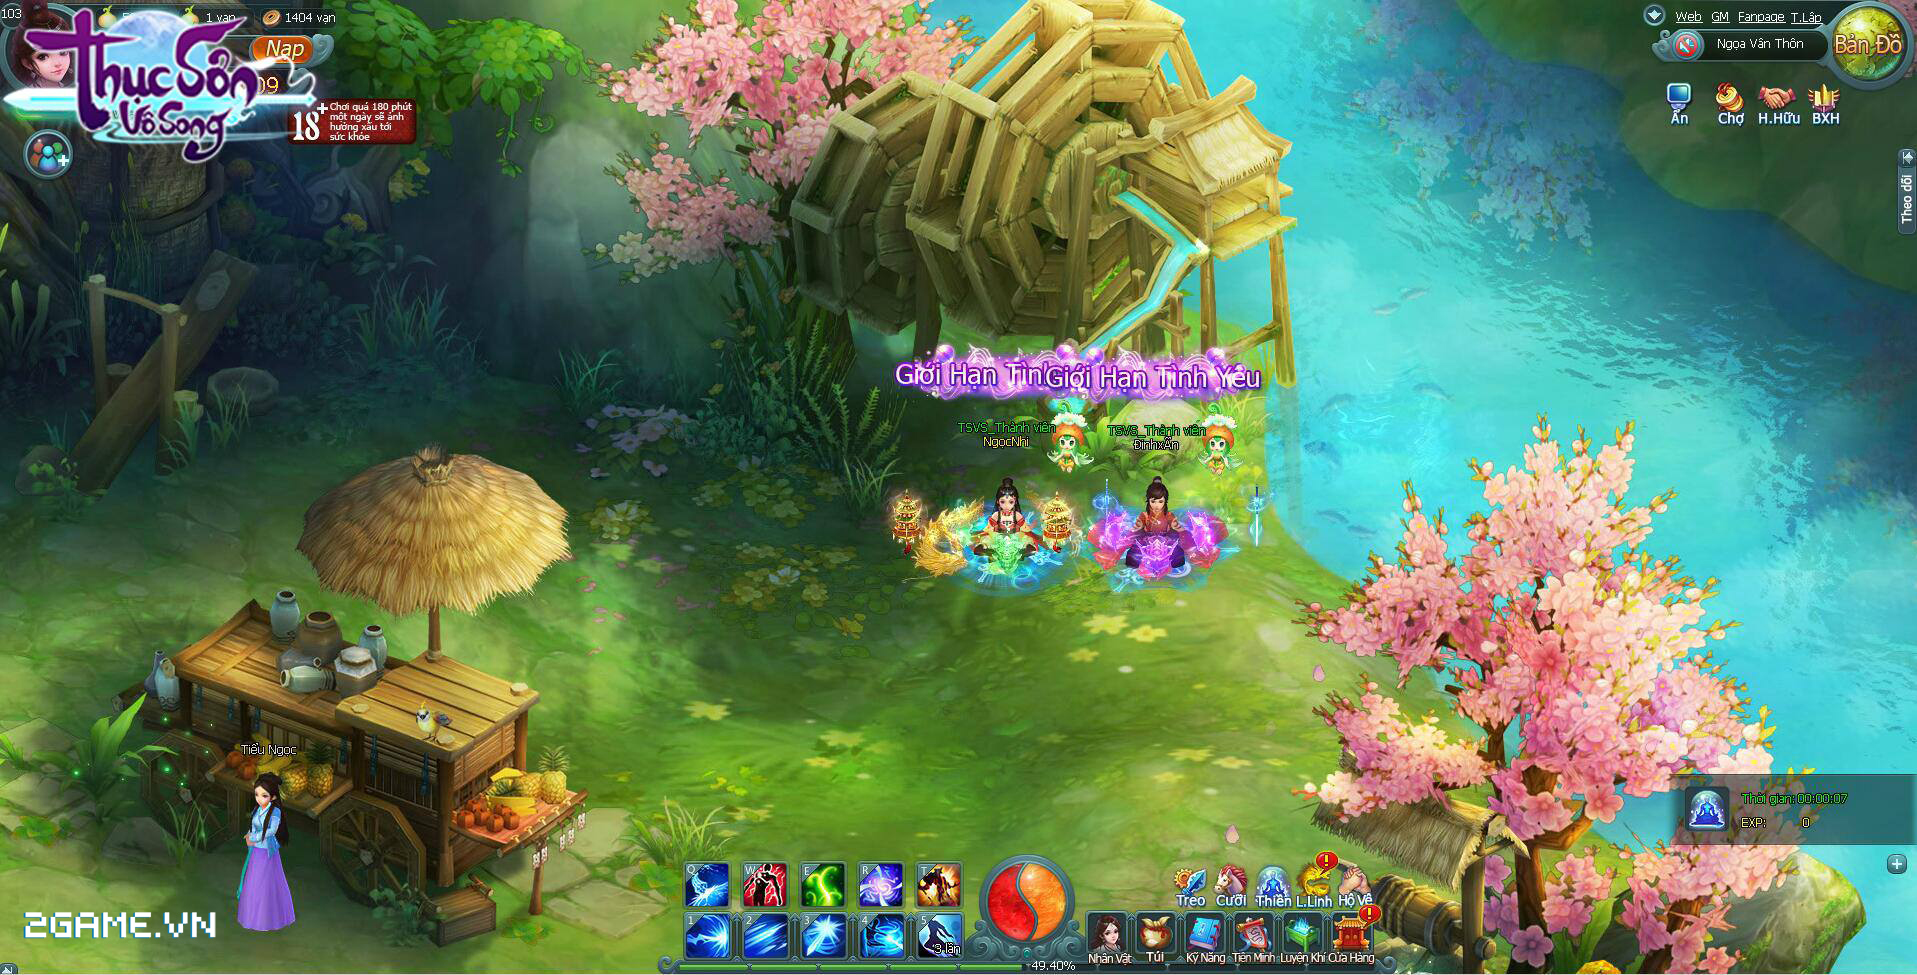 2game_webgame_thuc_son_vo_song_vng_6.jpg (1917×975)